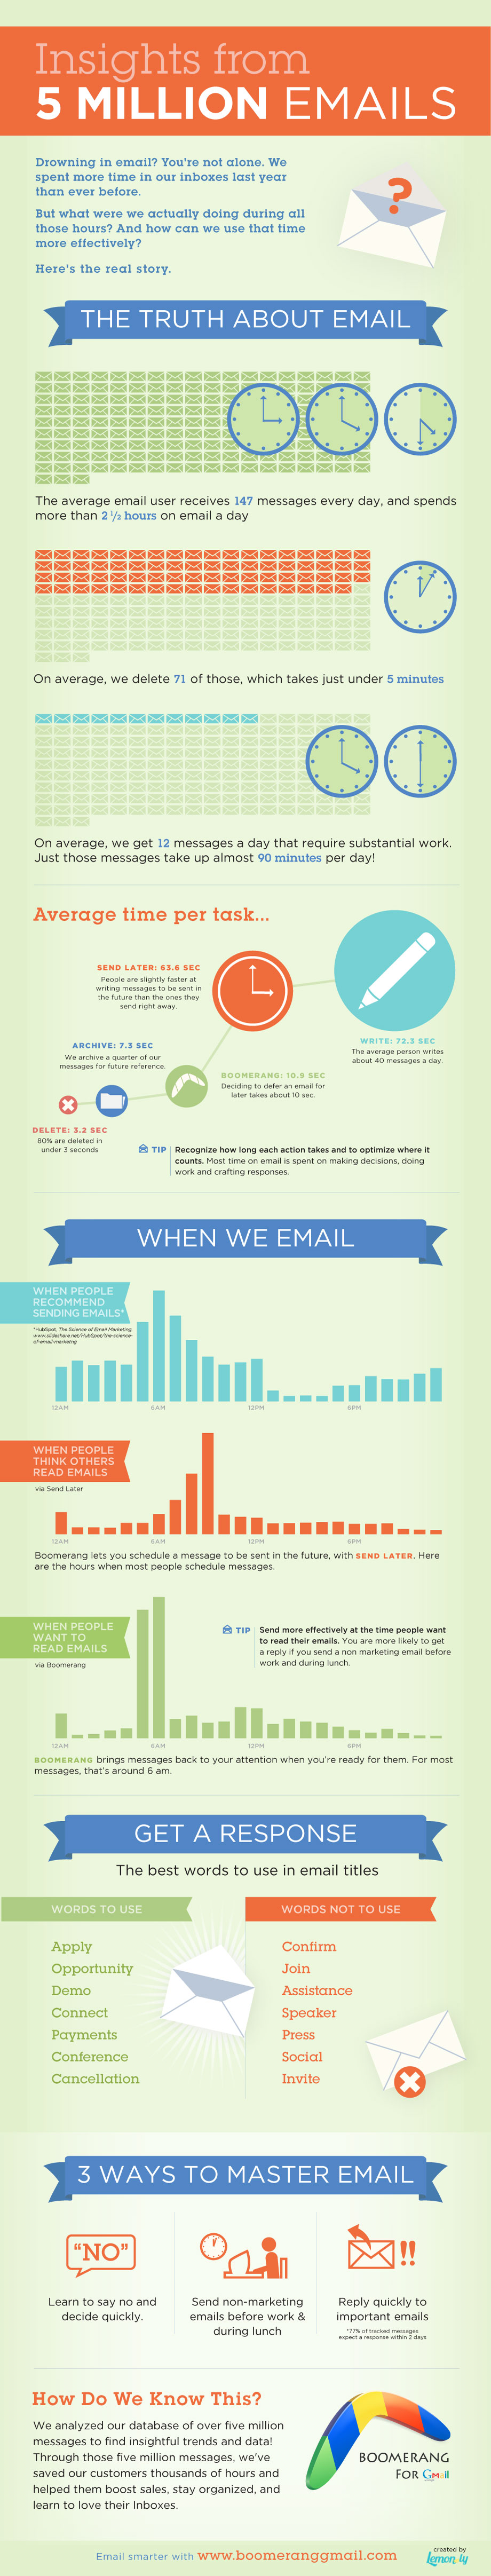 how to master email